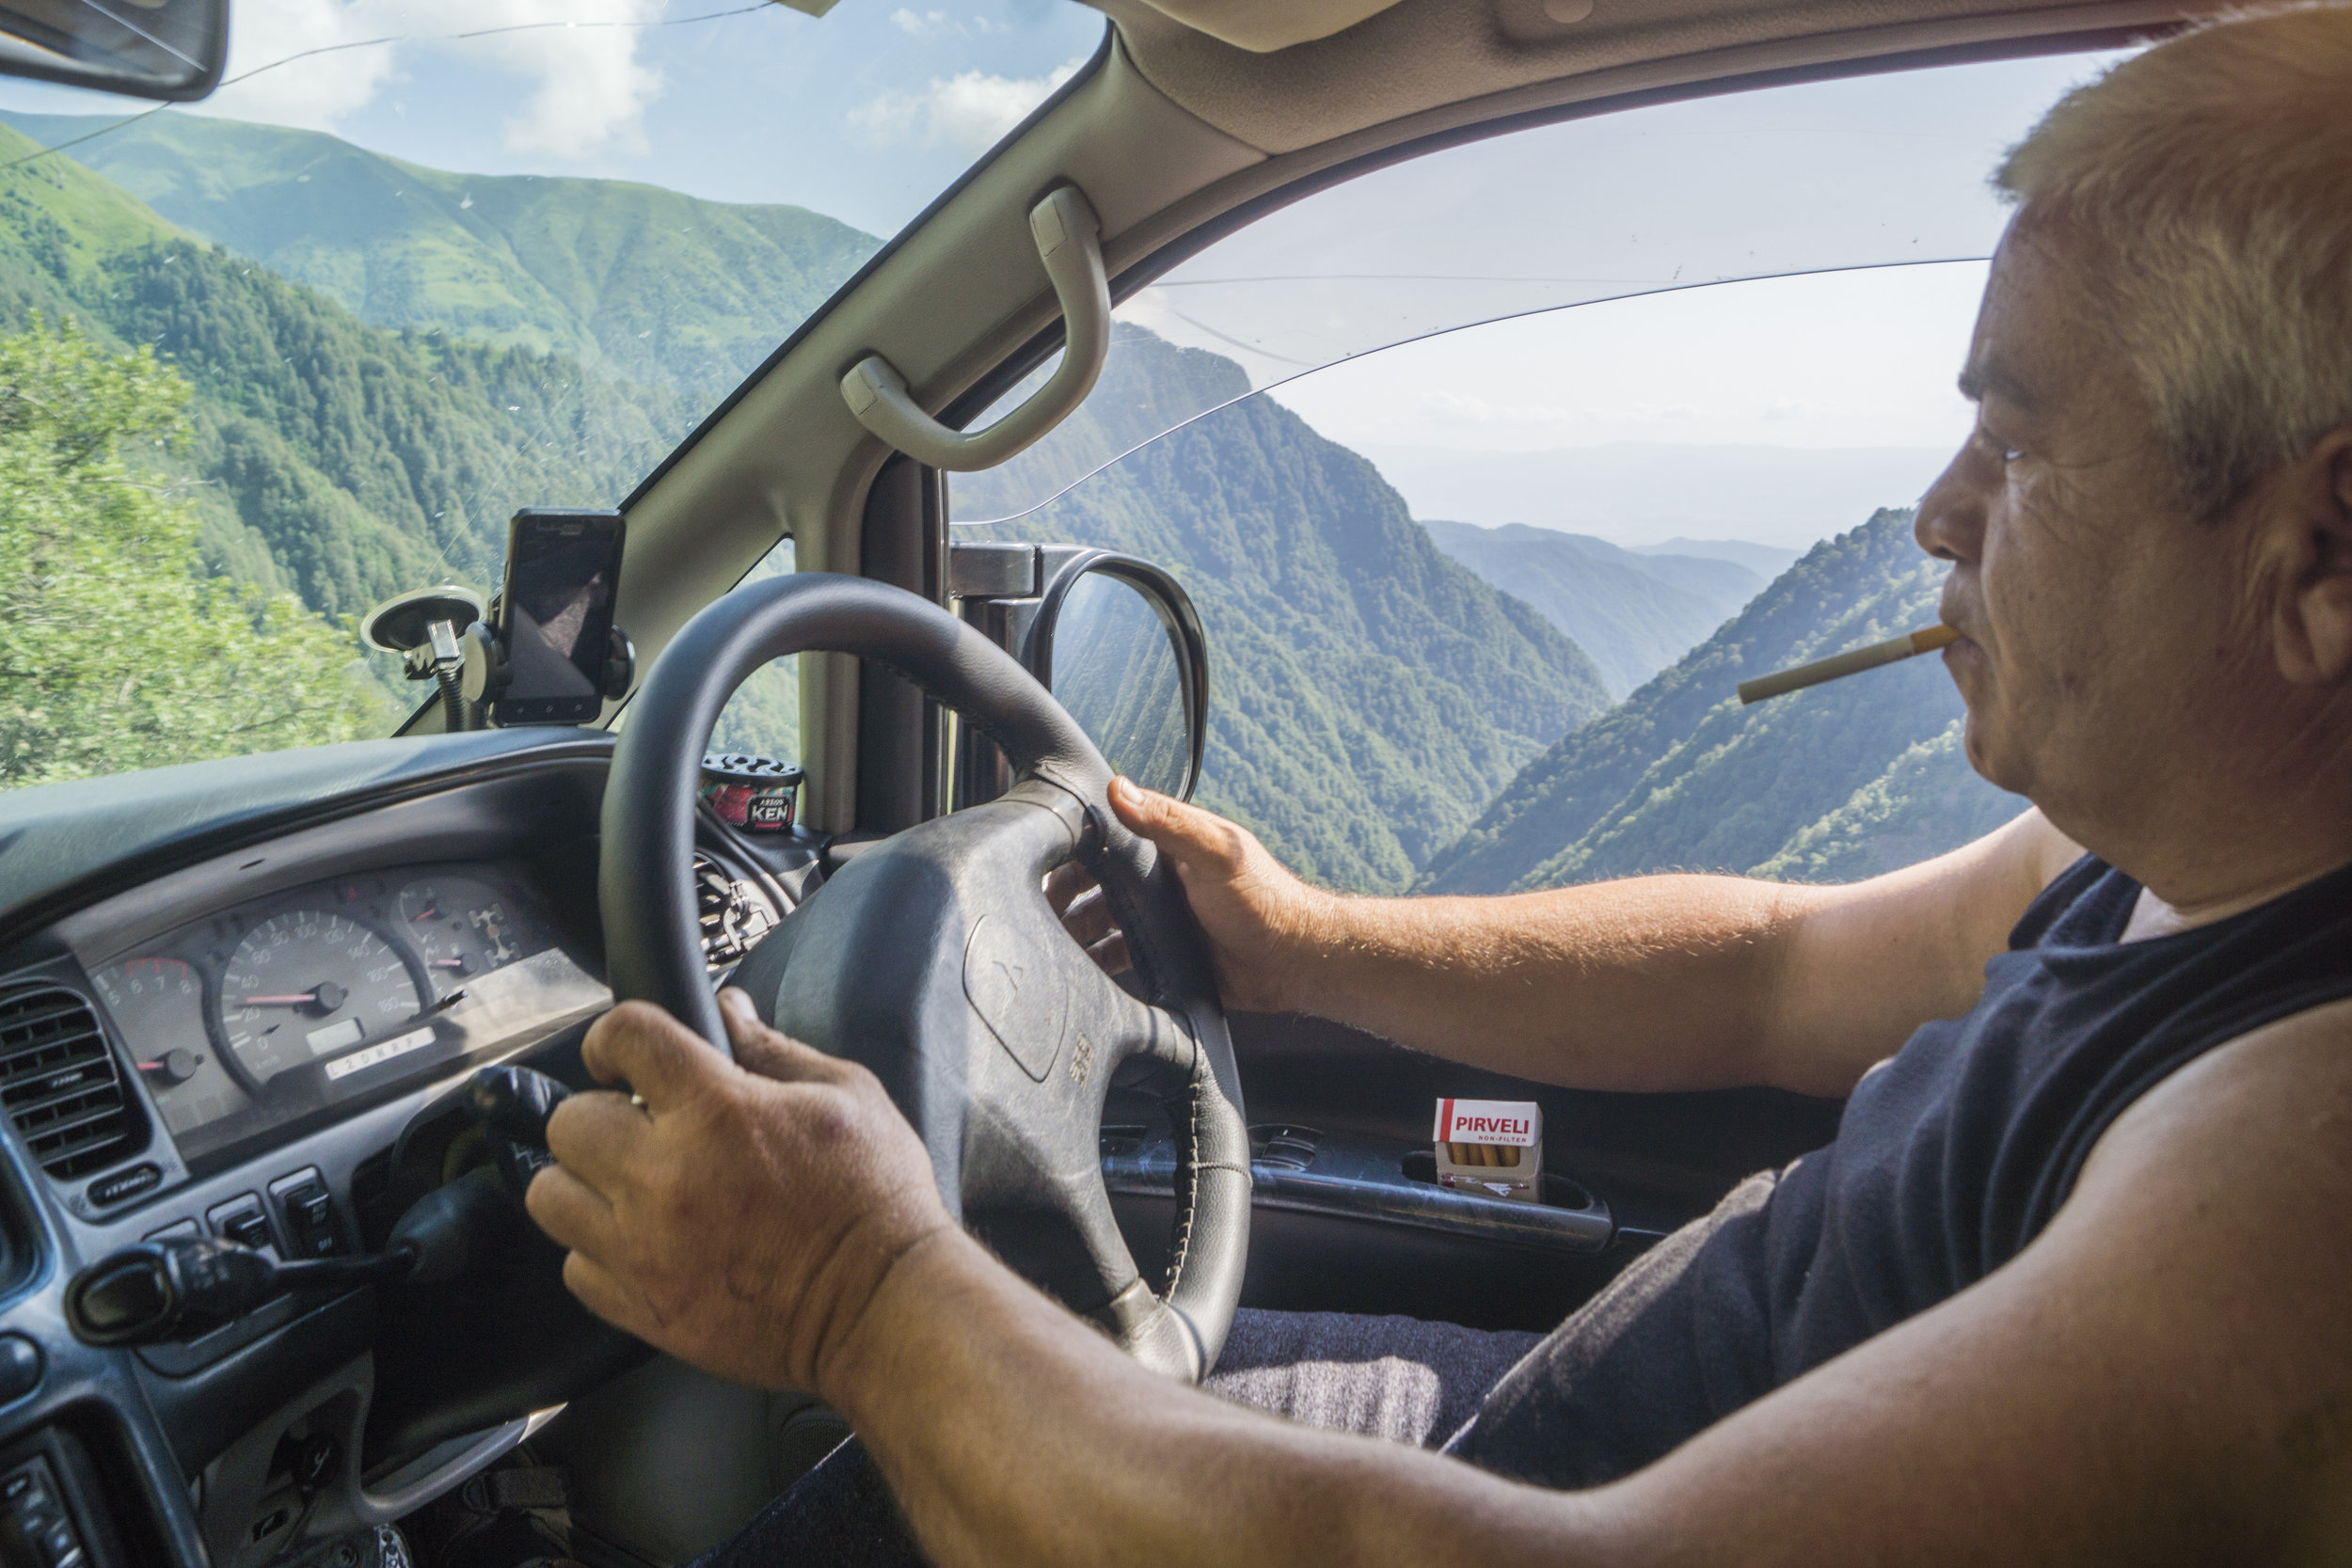 Letting go in Georgia:  Often during the trip, my fate was in the hands of others. Here, I get a lift up one of the world's most dangerous roads, in Georgia.